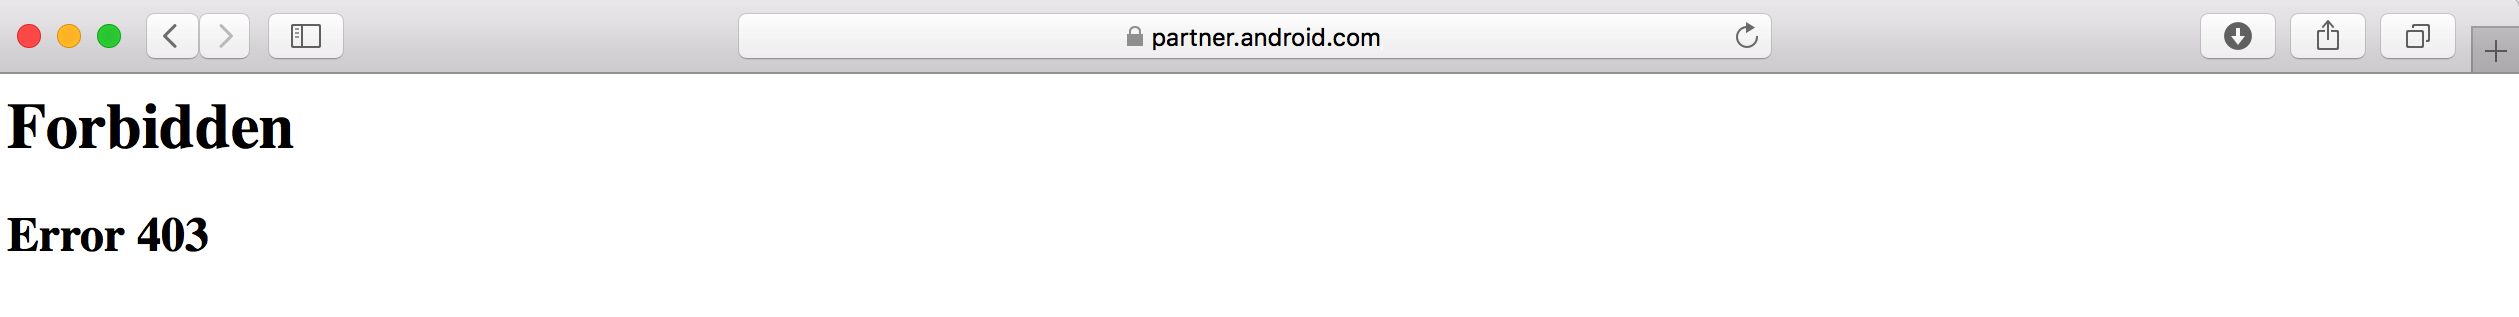 "Safari going to ""partner android com"" and giving ""FORBIDDEN"